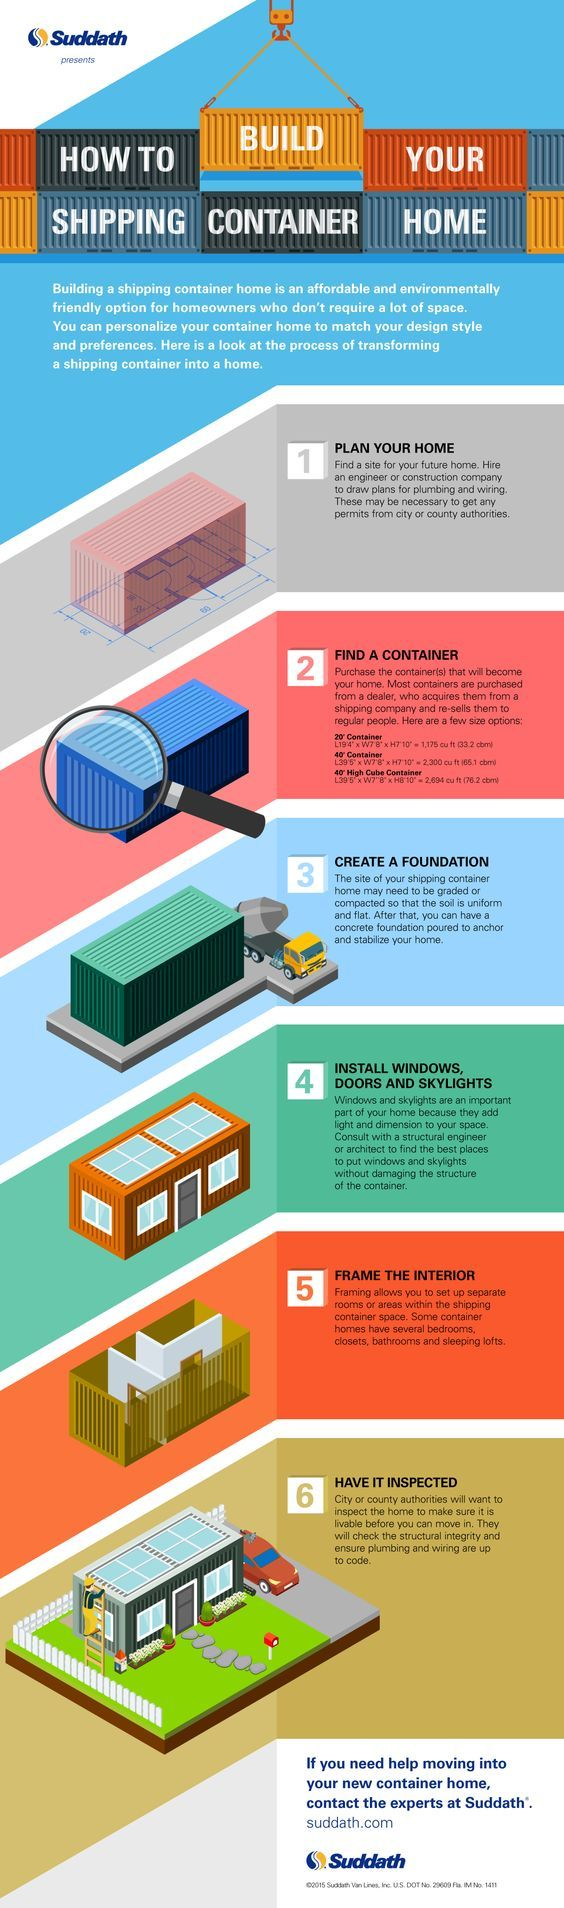 How to build your shipping container home #containerhome #shippingcontainer More